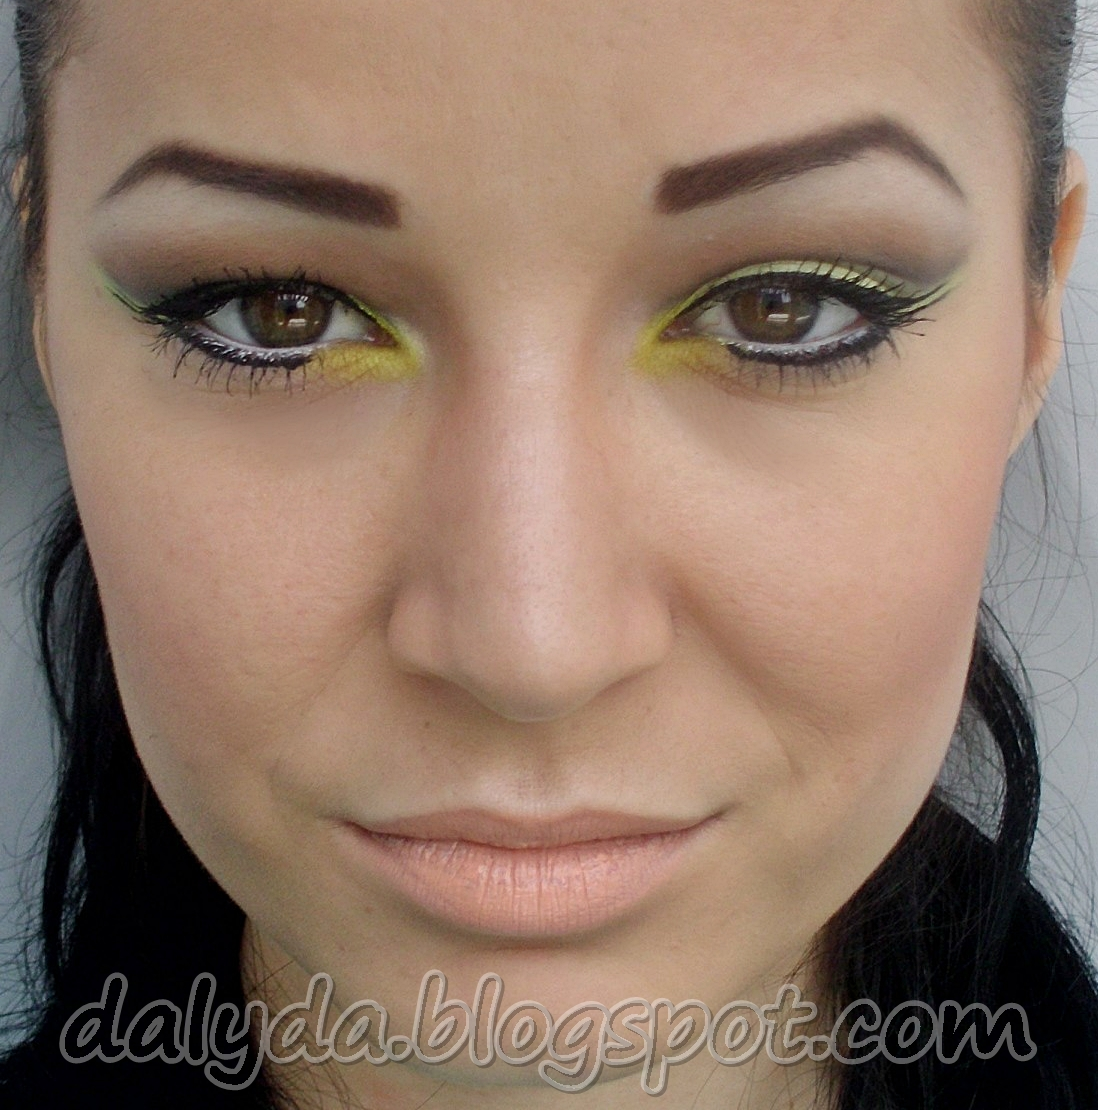 makeup inspired by beyonce quotcountdownquot dalyda makeup